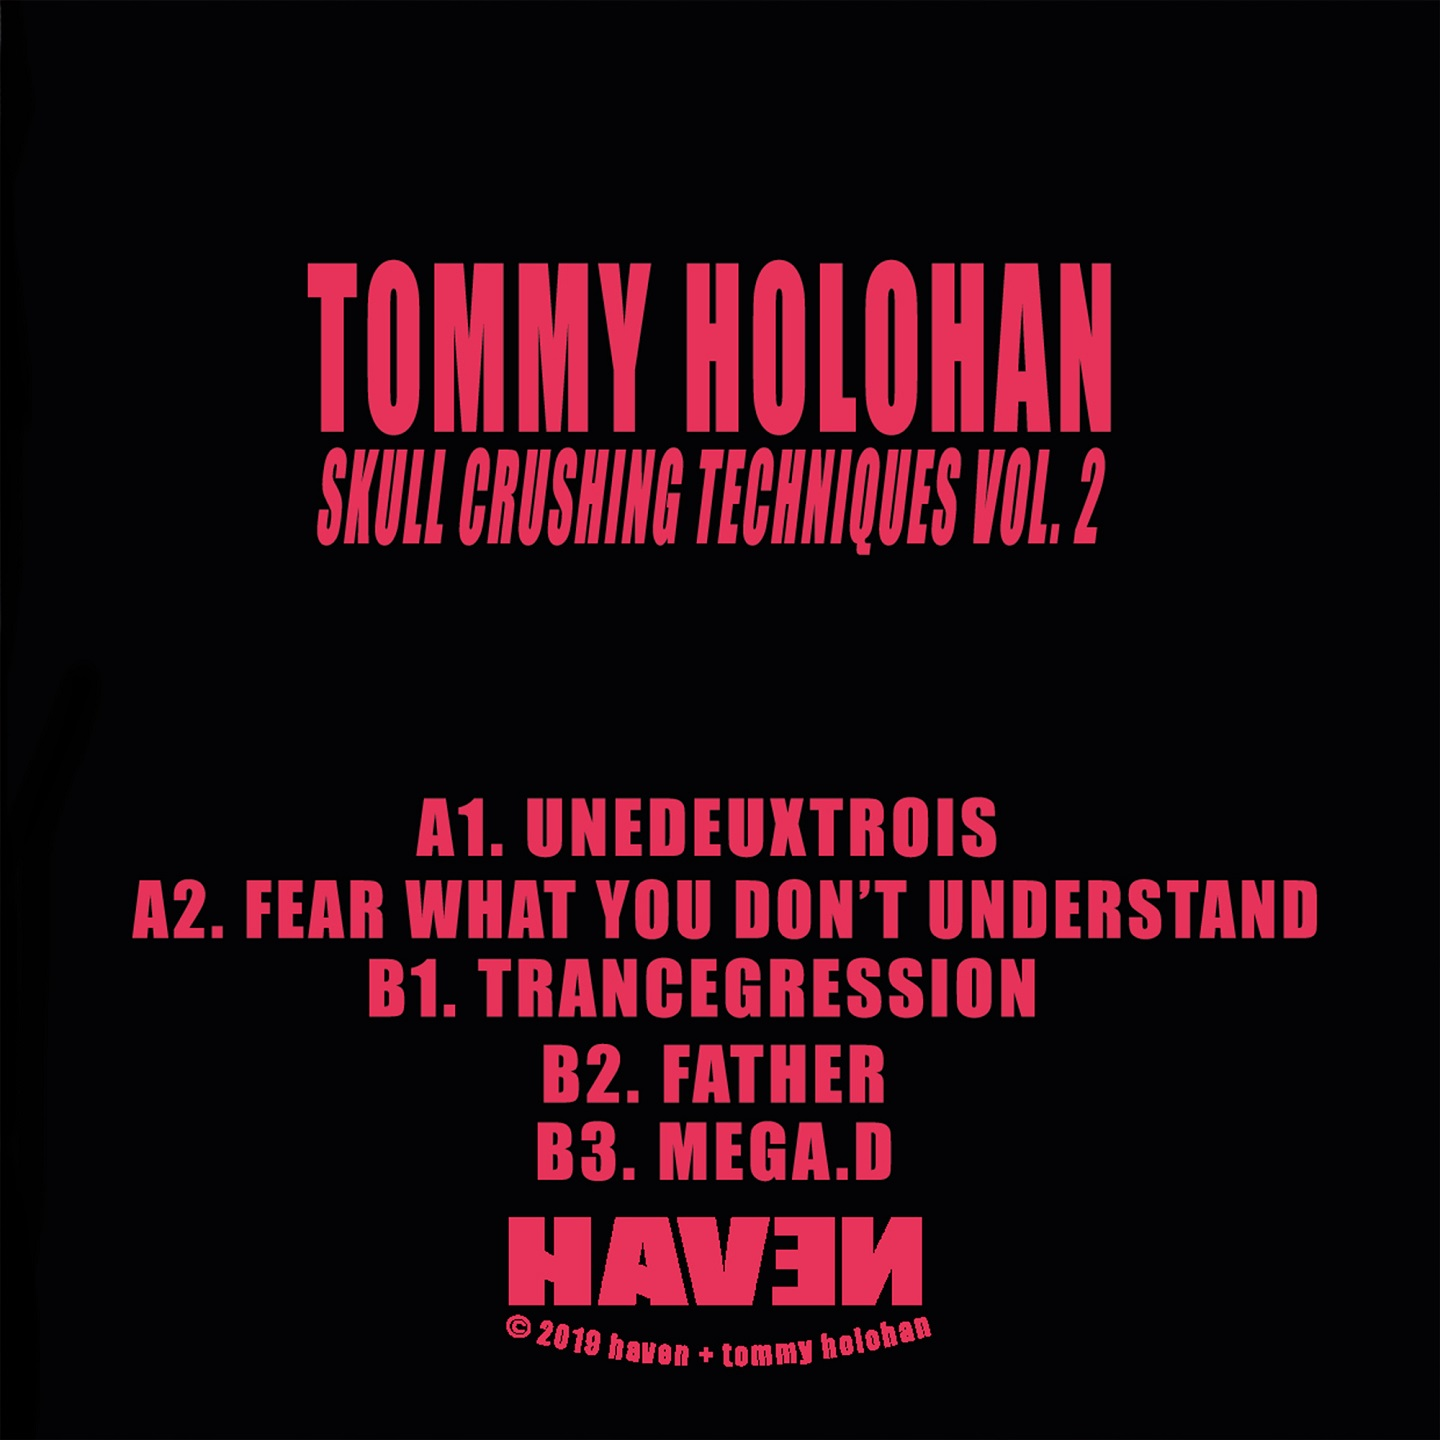 Tommy Holohan - Skull Crushing Techniques Vol.2